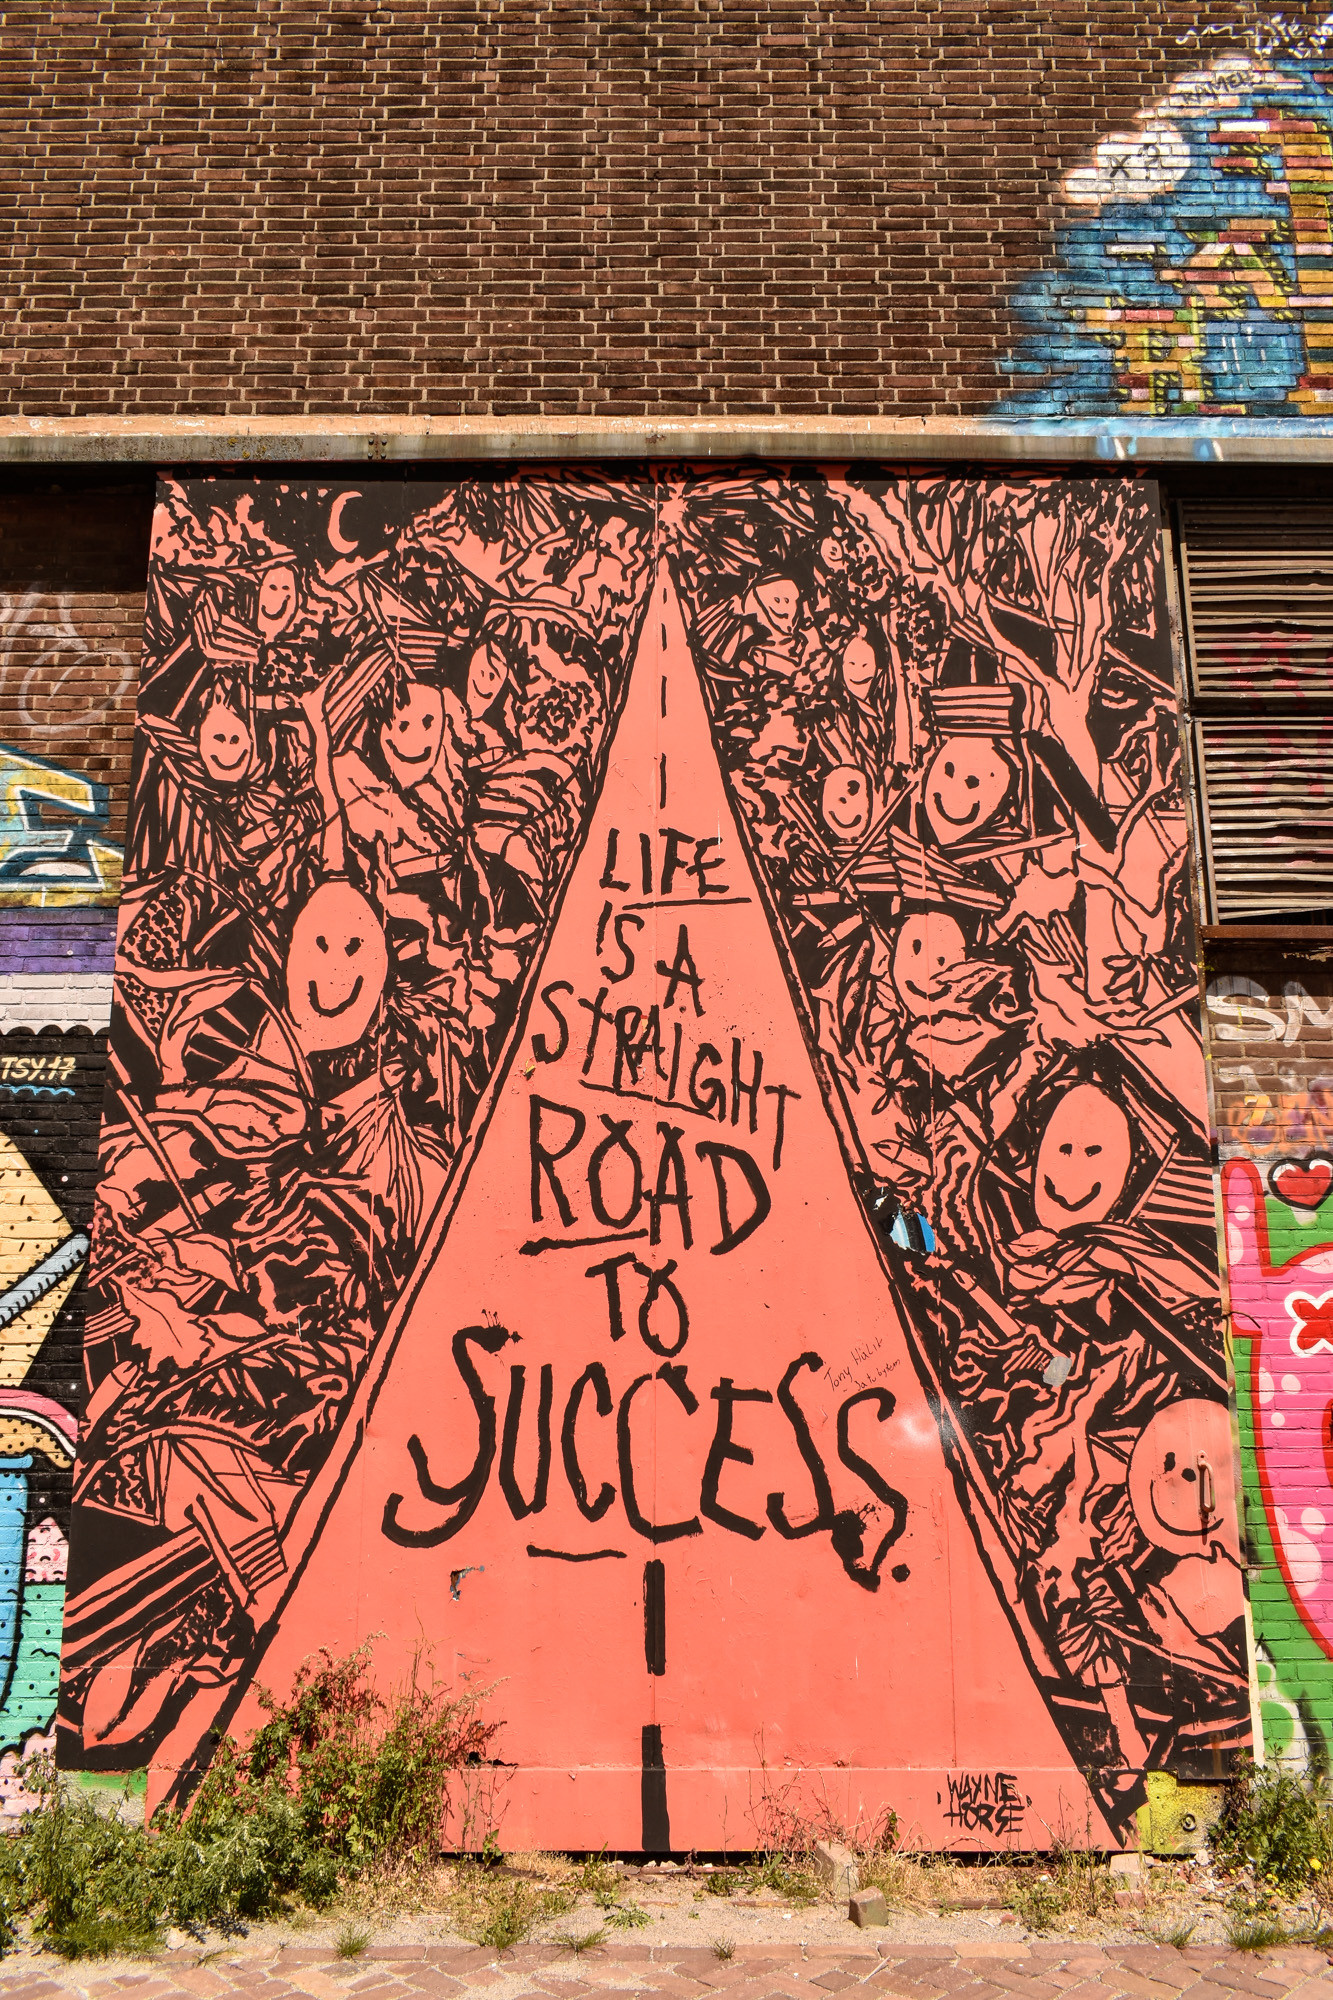 life-is-a-straight-road-to-success-street-art-amsterdam